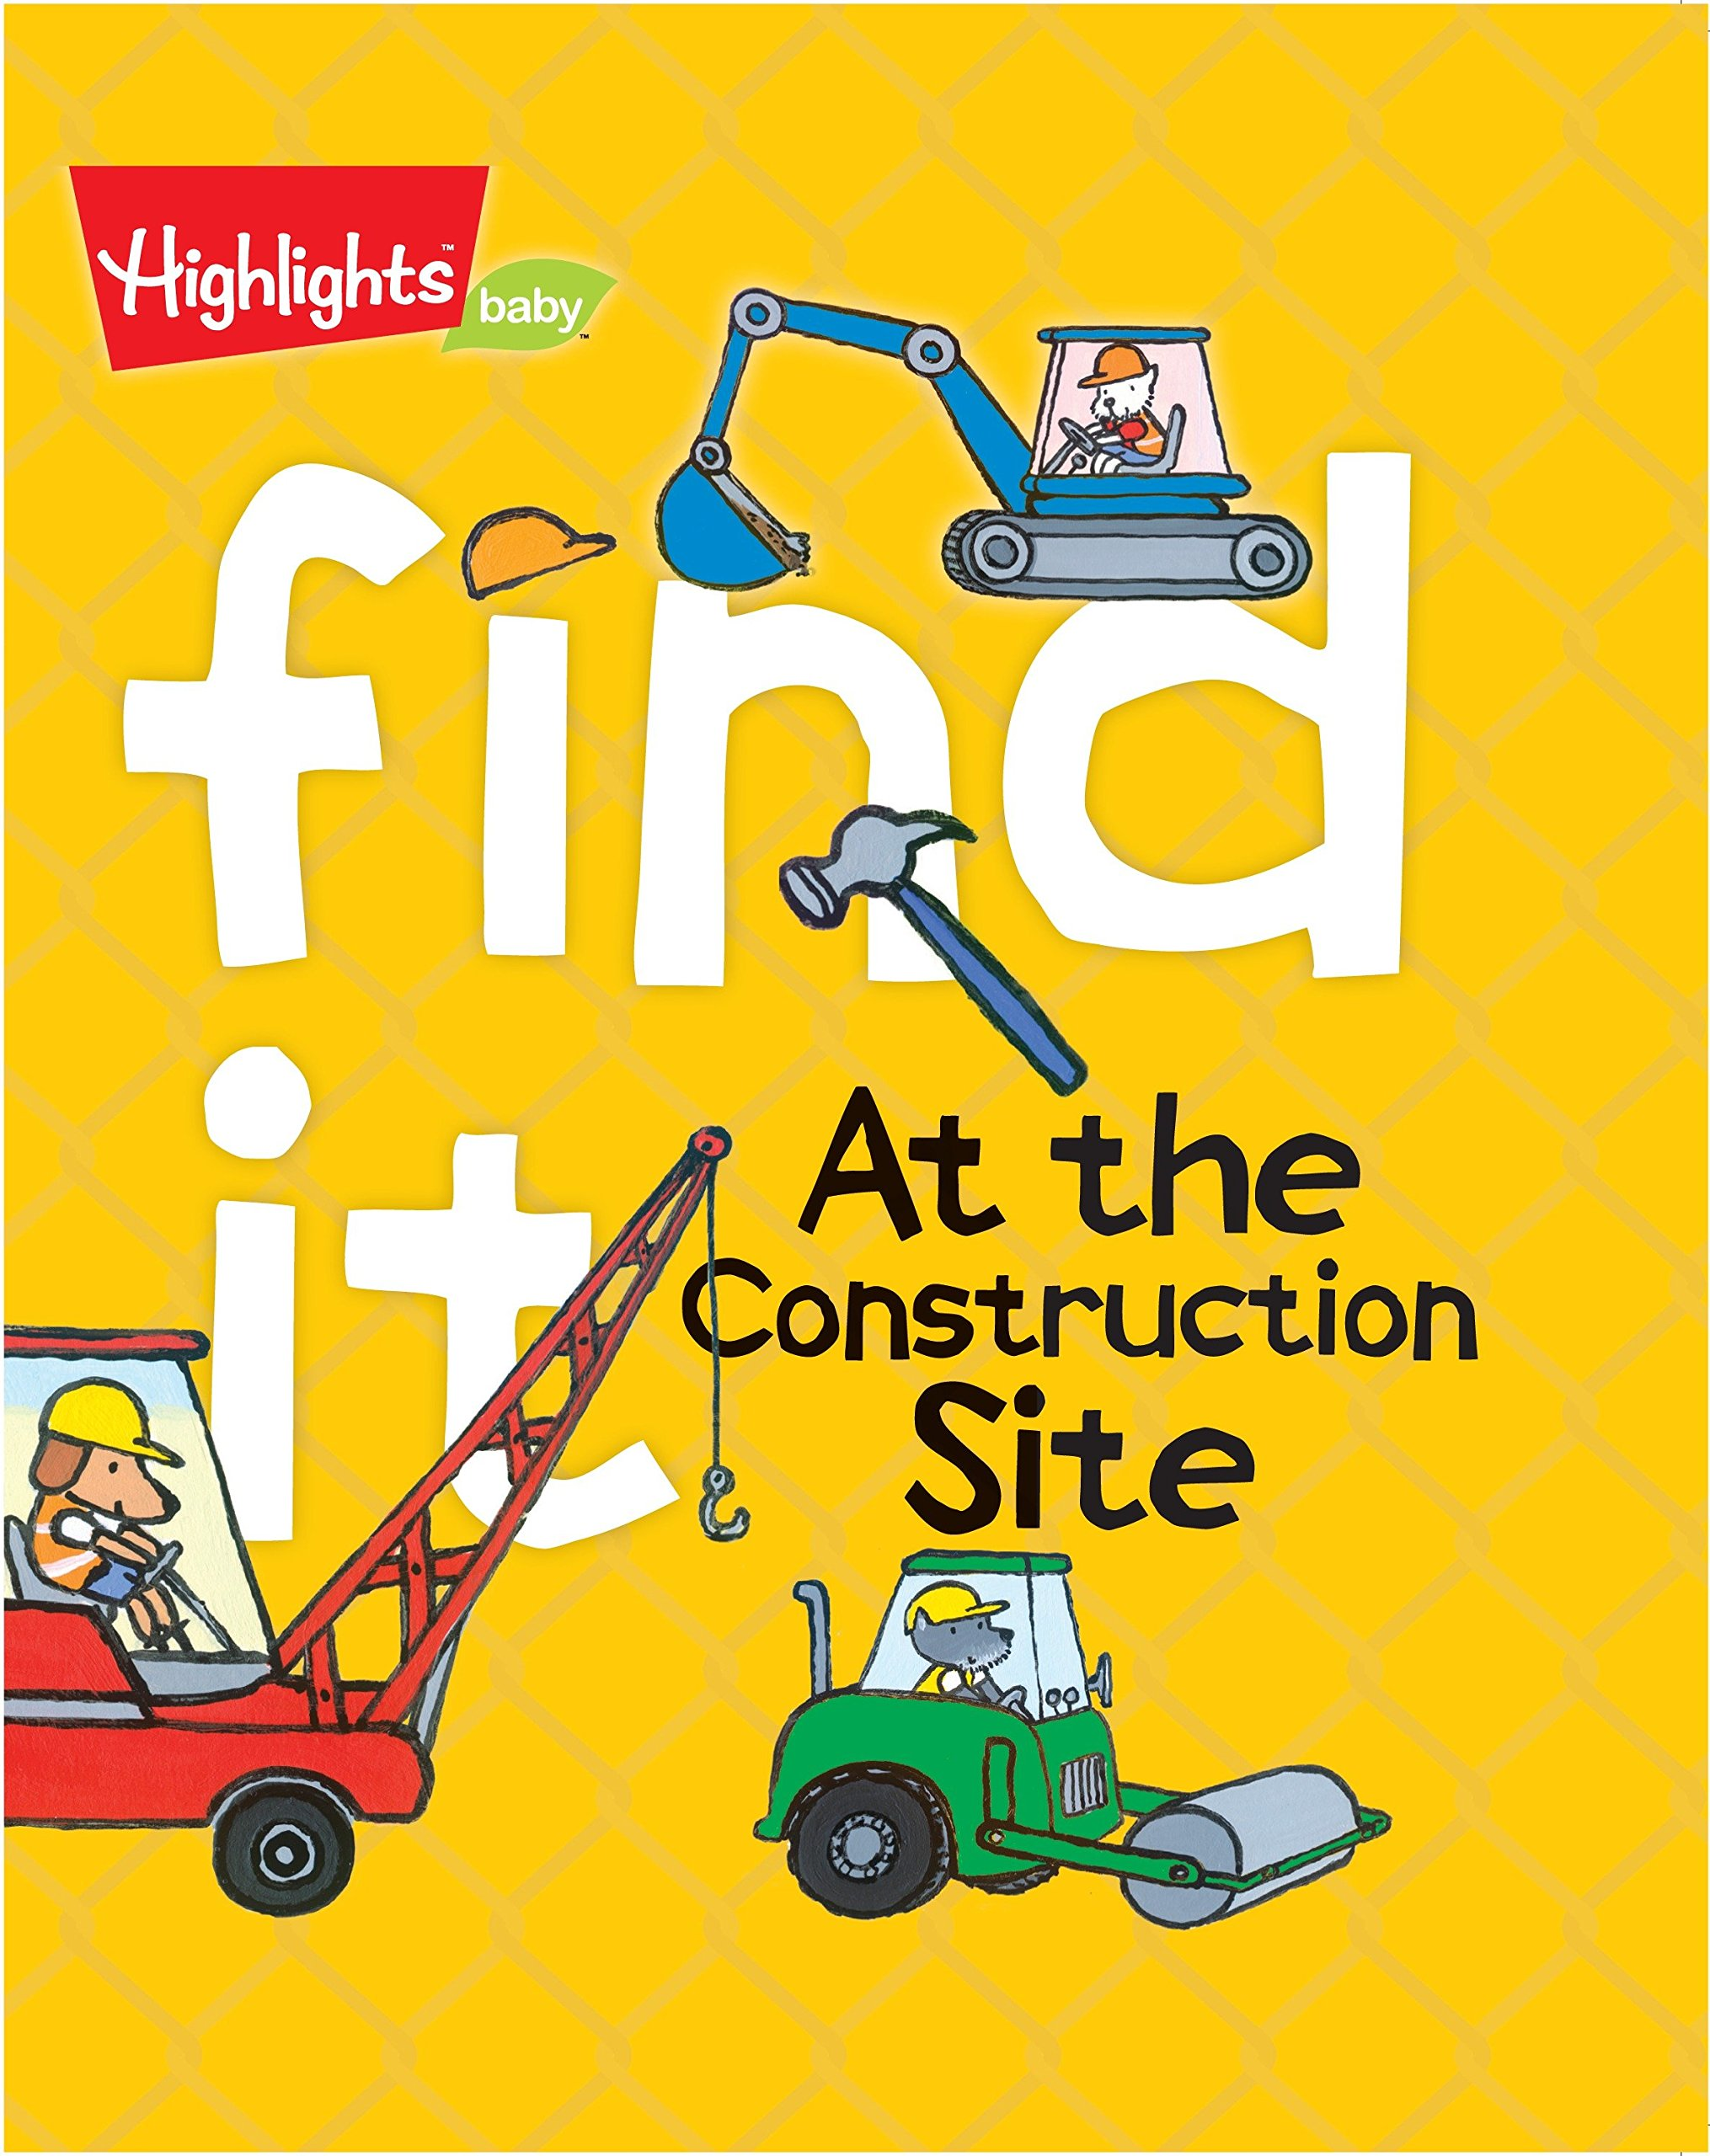 Find It! At the Construction Site (Highlights™ Find It) Board book – August 23, 2016 Highlights Press 1629797057 Activity Books Concepts - General